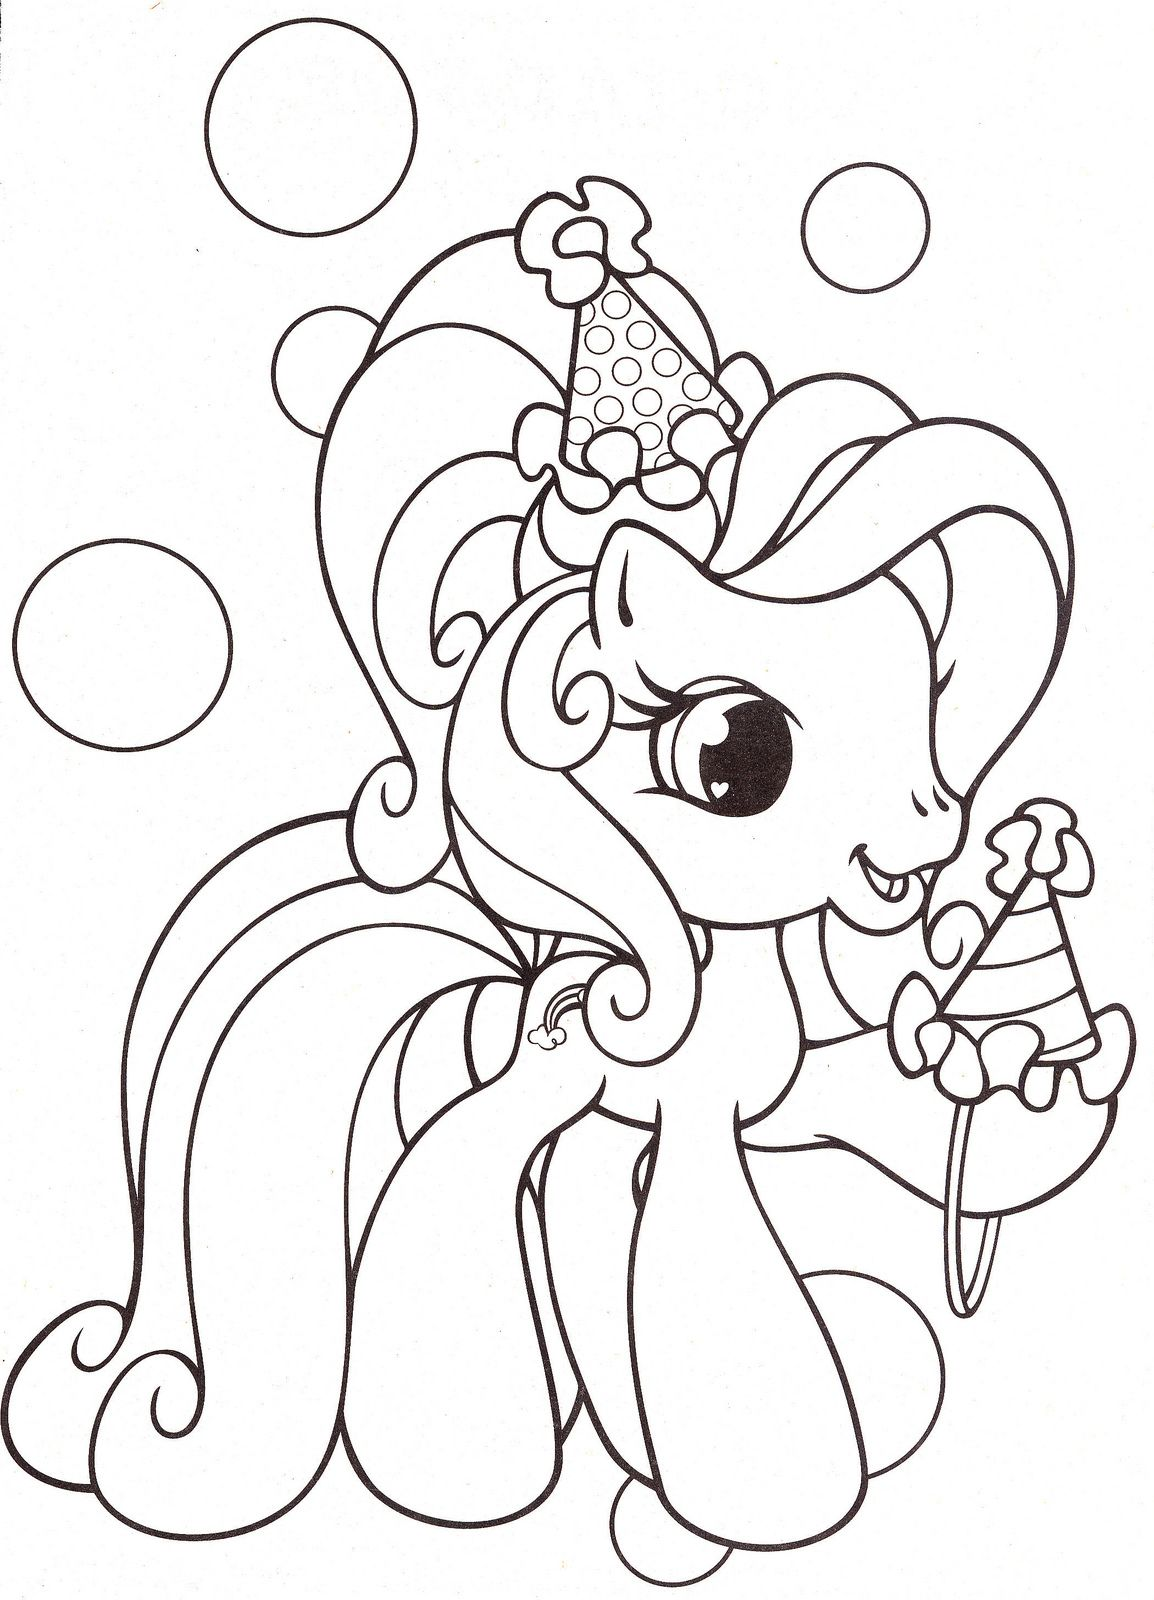 My Little Pony Coloring Pages 15 My Little Pony Coloring Horse Coloring Pages Pokemon Coloring Pages